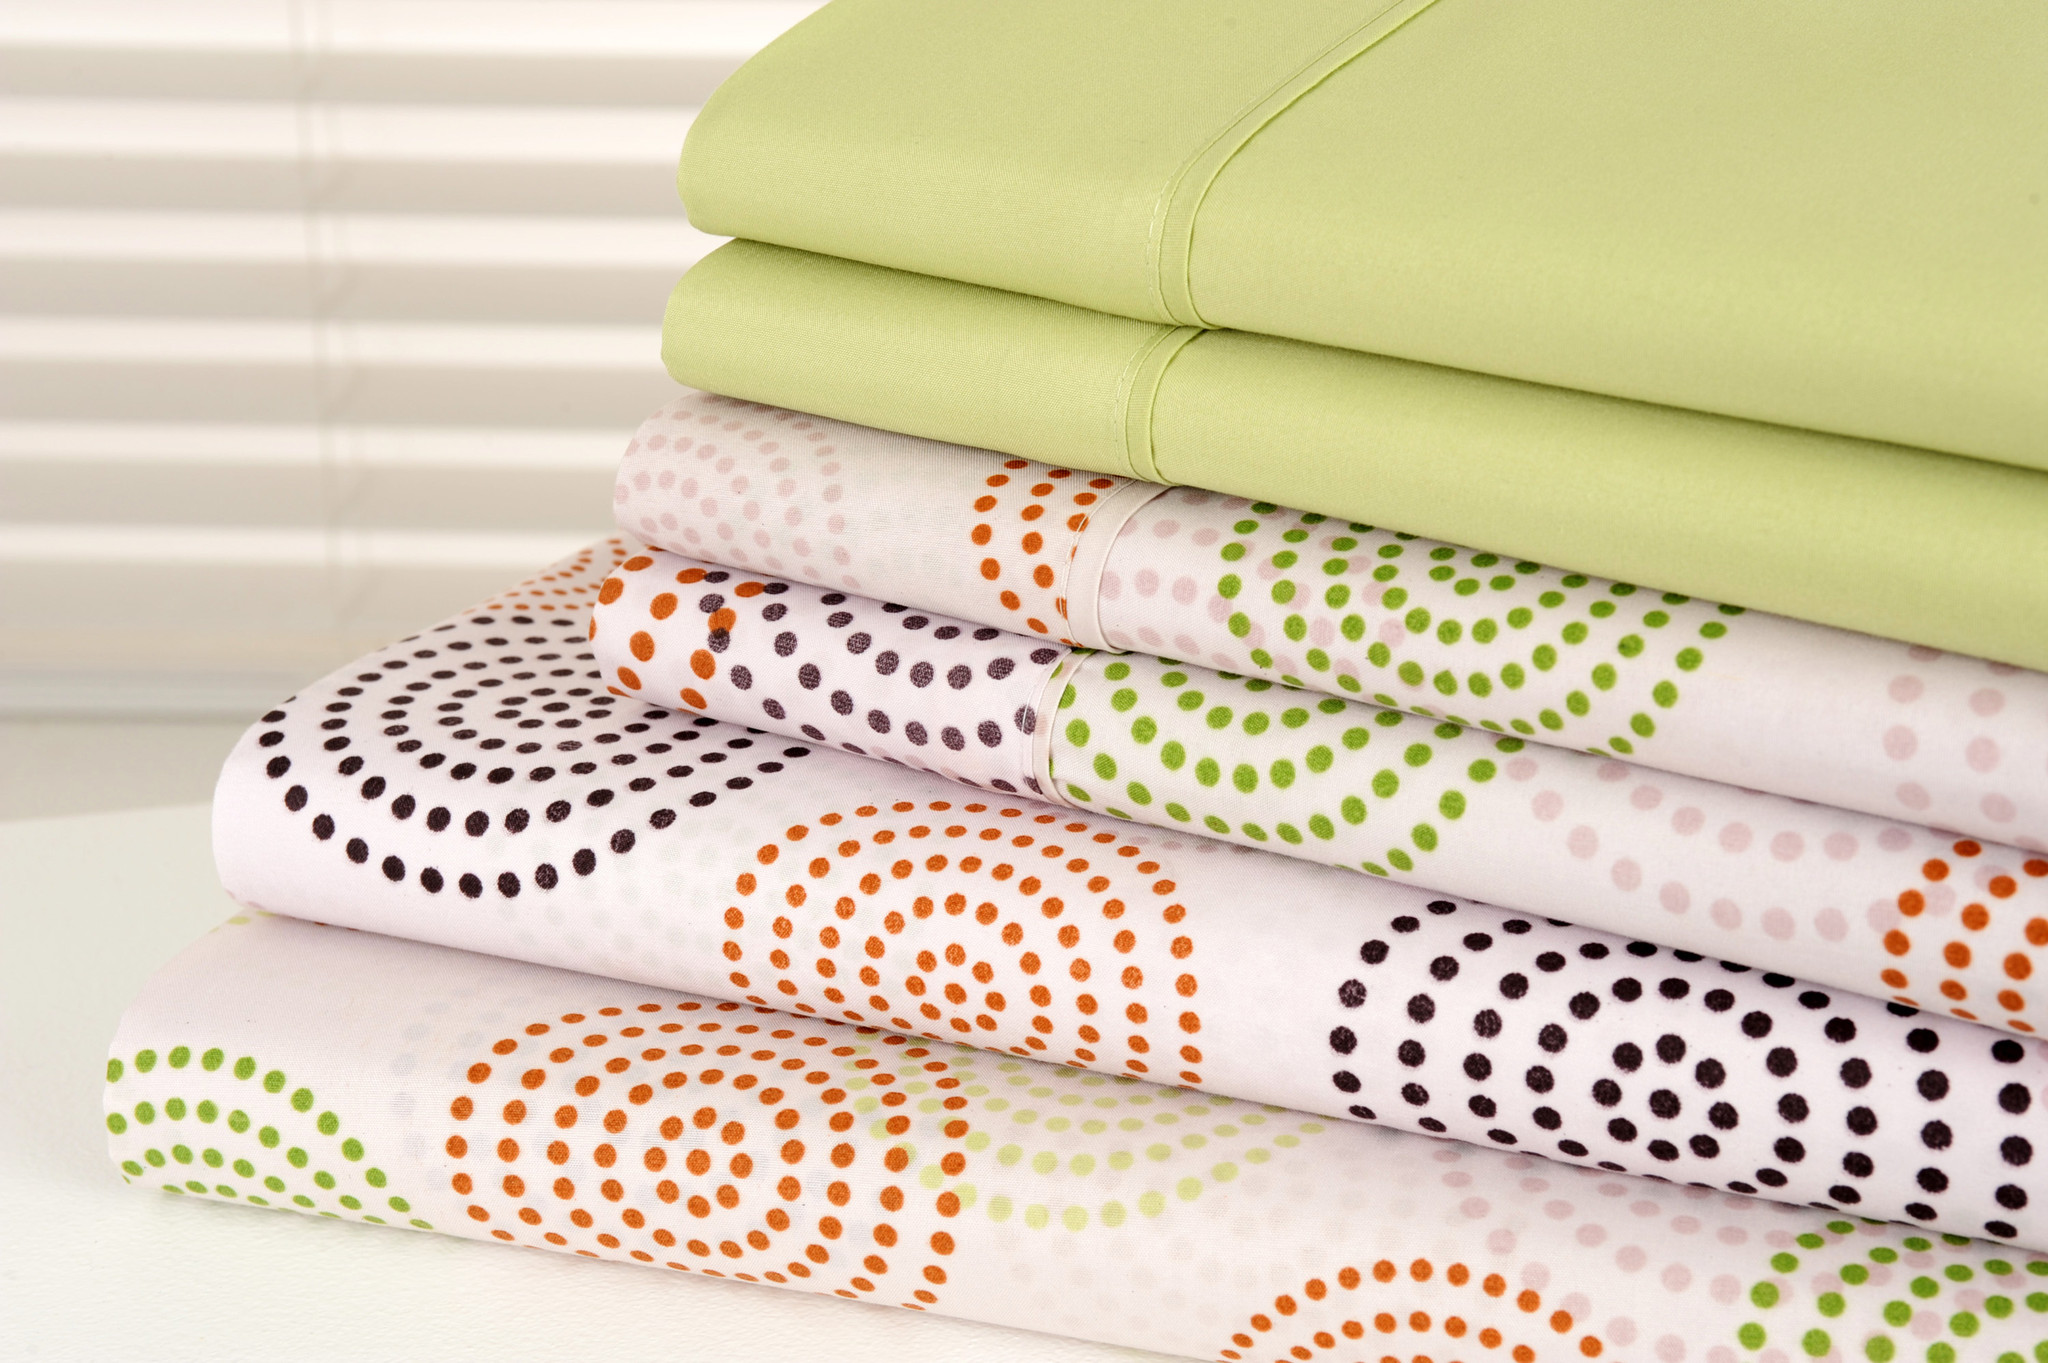 Venetian 1200 Count Soft Brushed Microfiber Organic Bed Sheets 6 Piece Set  Deep Pockets   12 Designs   Full / Green Dots